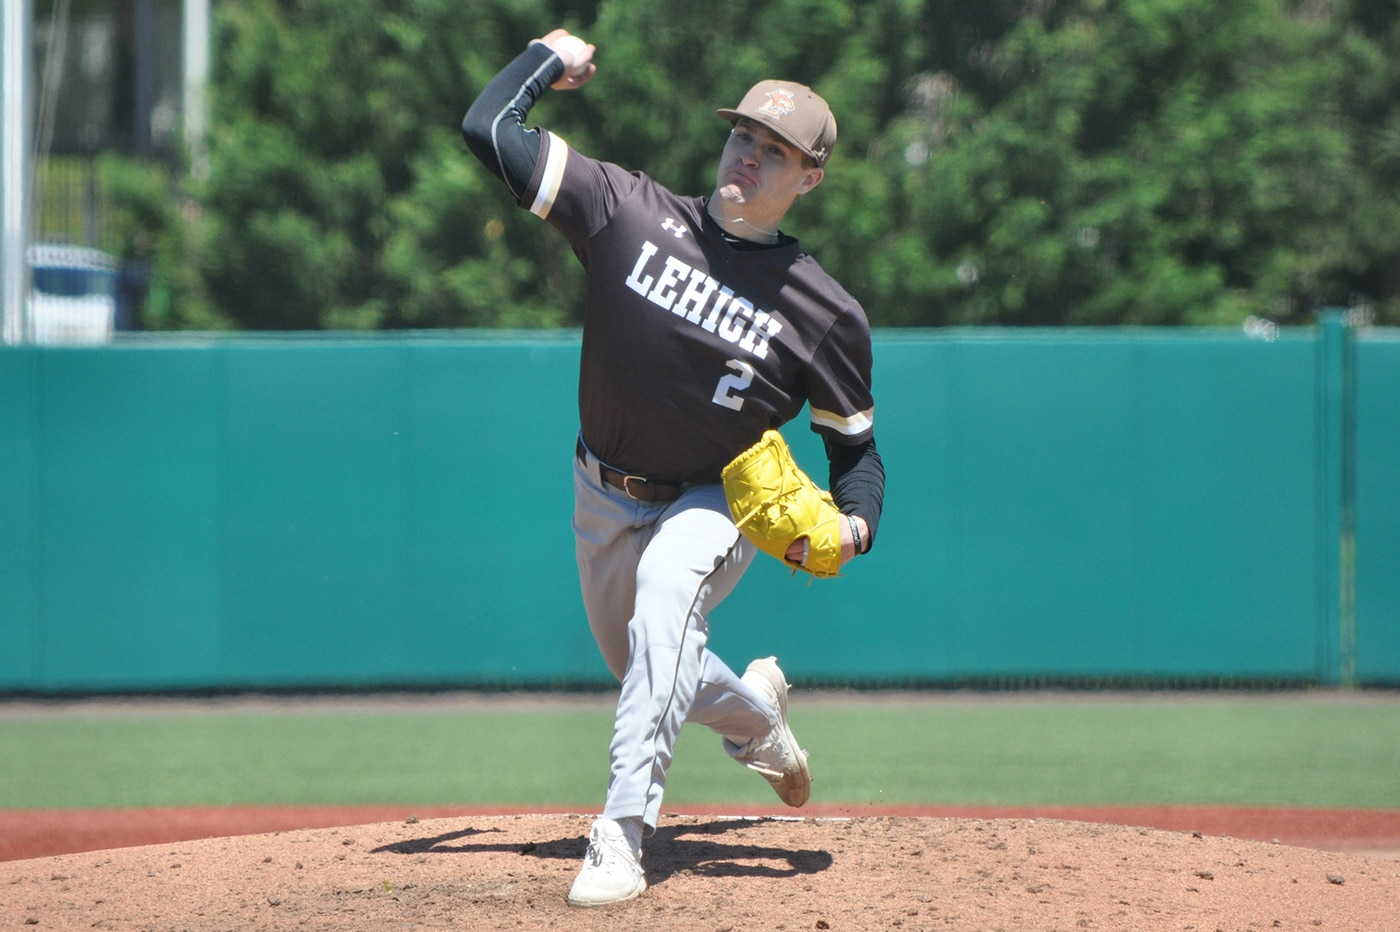 MLB draft: For Lehigh pitcher Levi Stoudt, tip that he would get picked by Seattle proved true